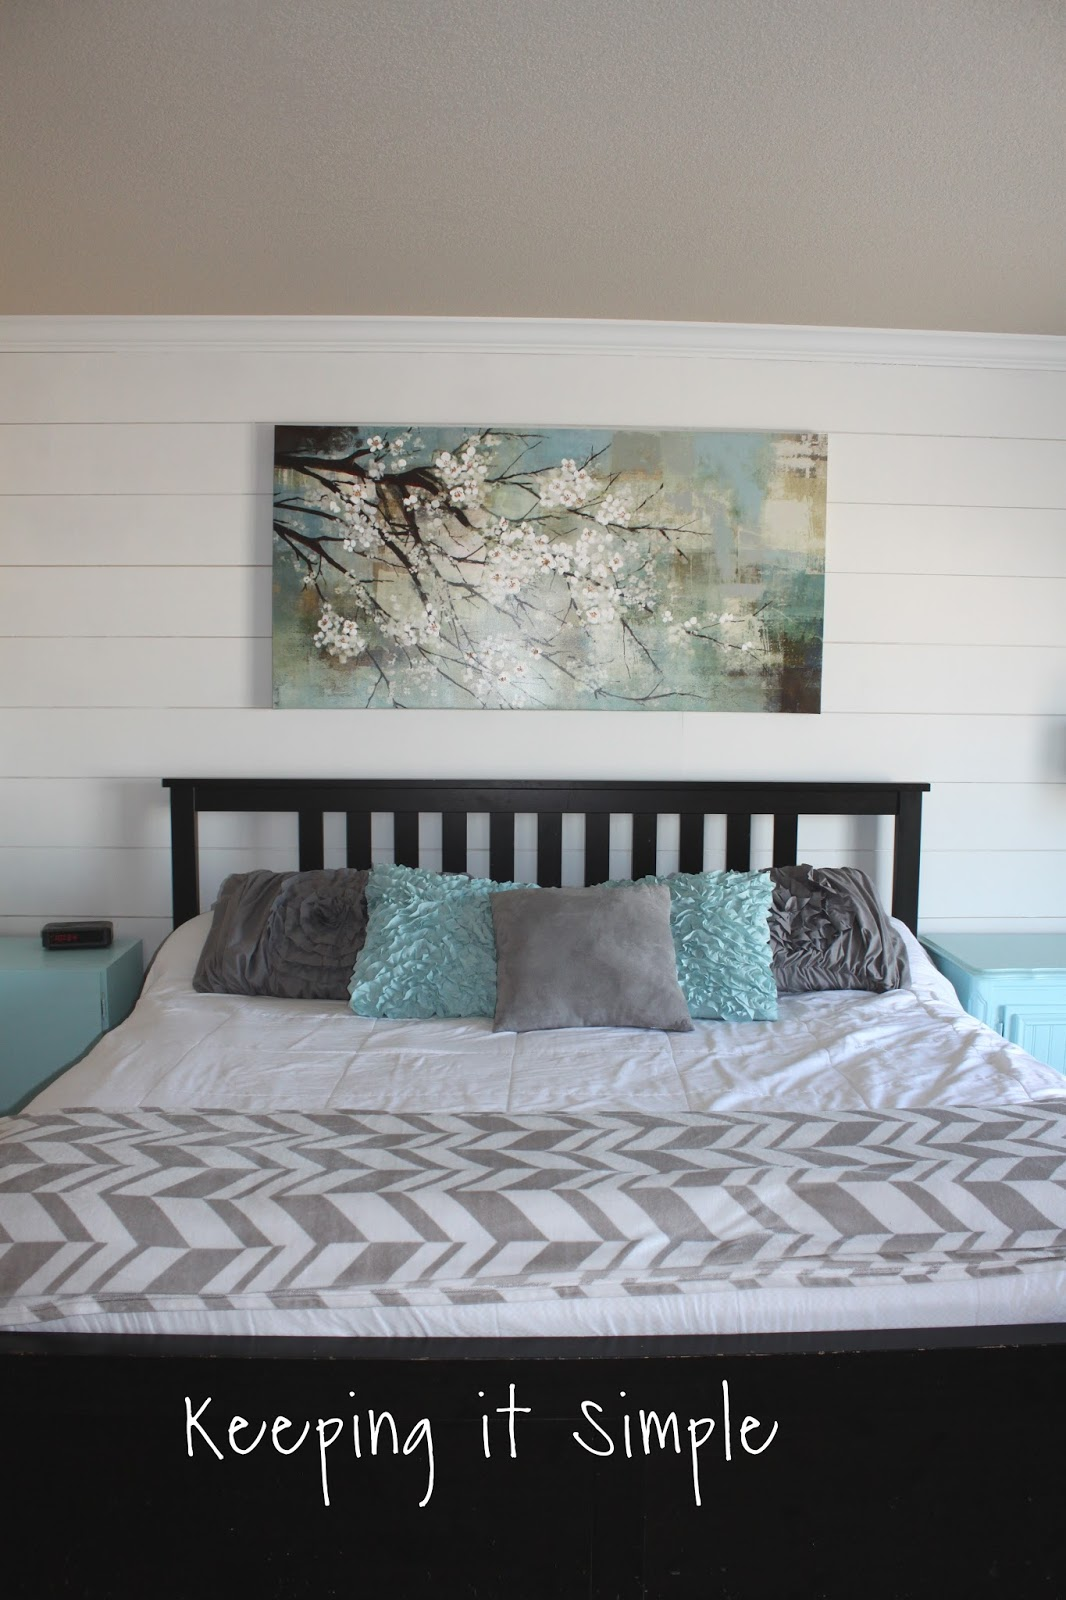 Keeping It Simple How To Build A Shiplap In A Master Bedroom For 100